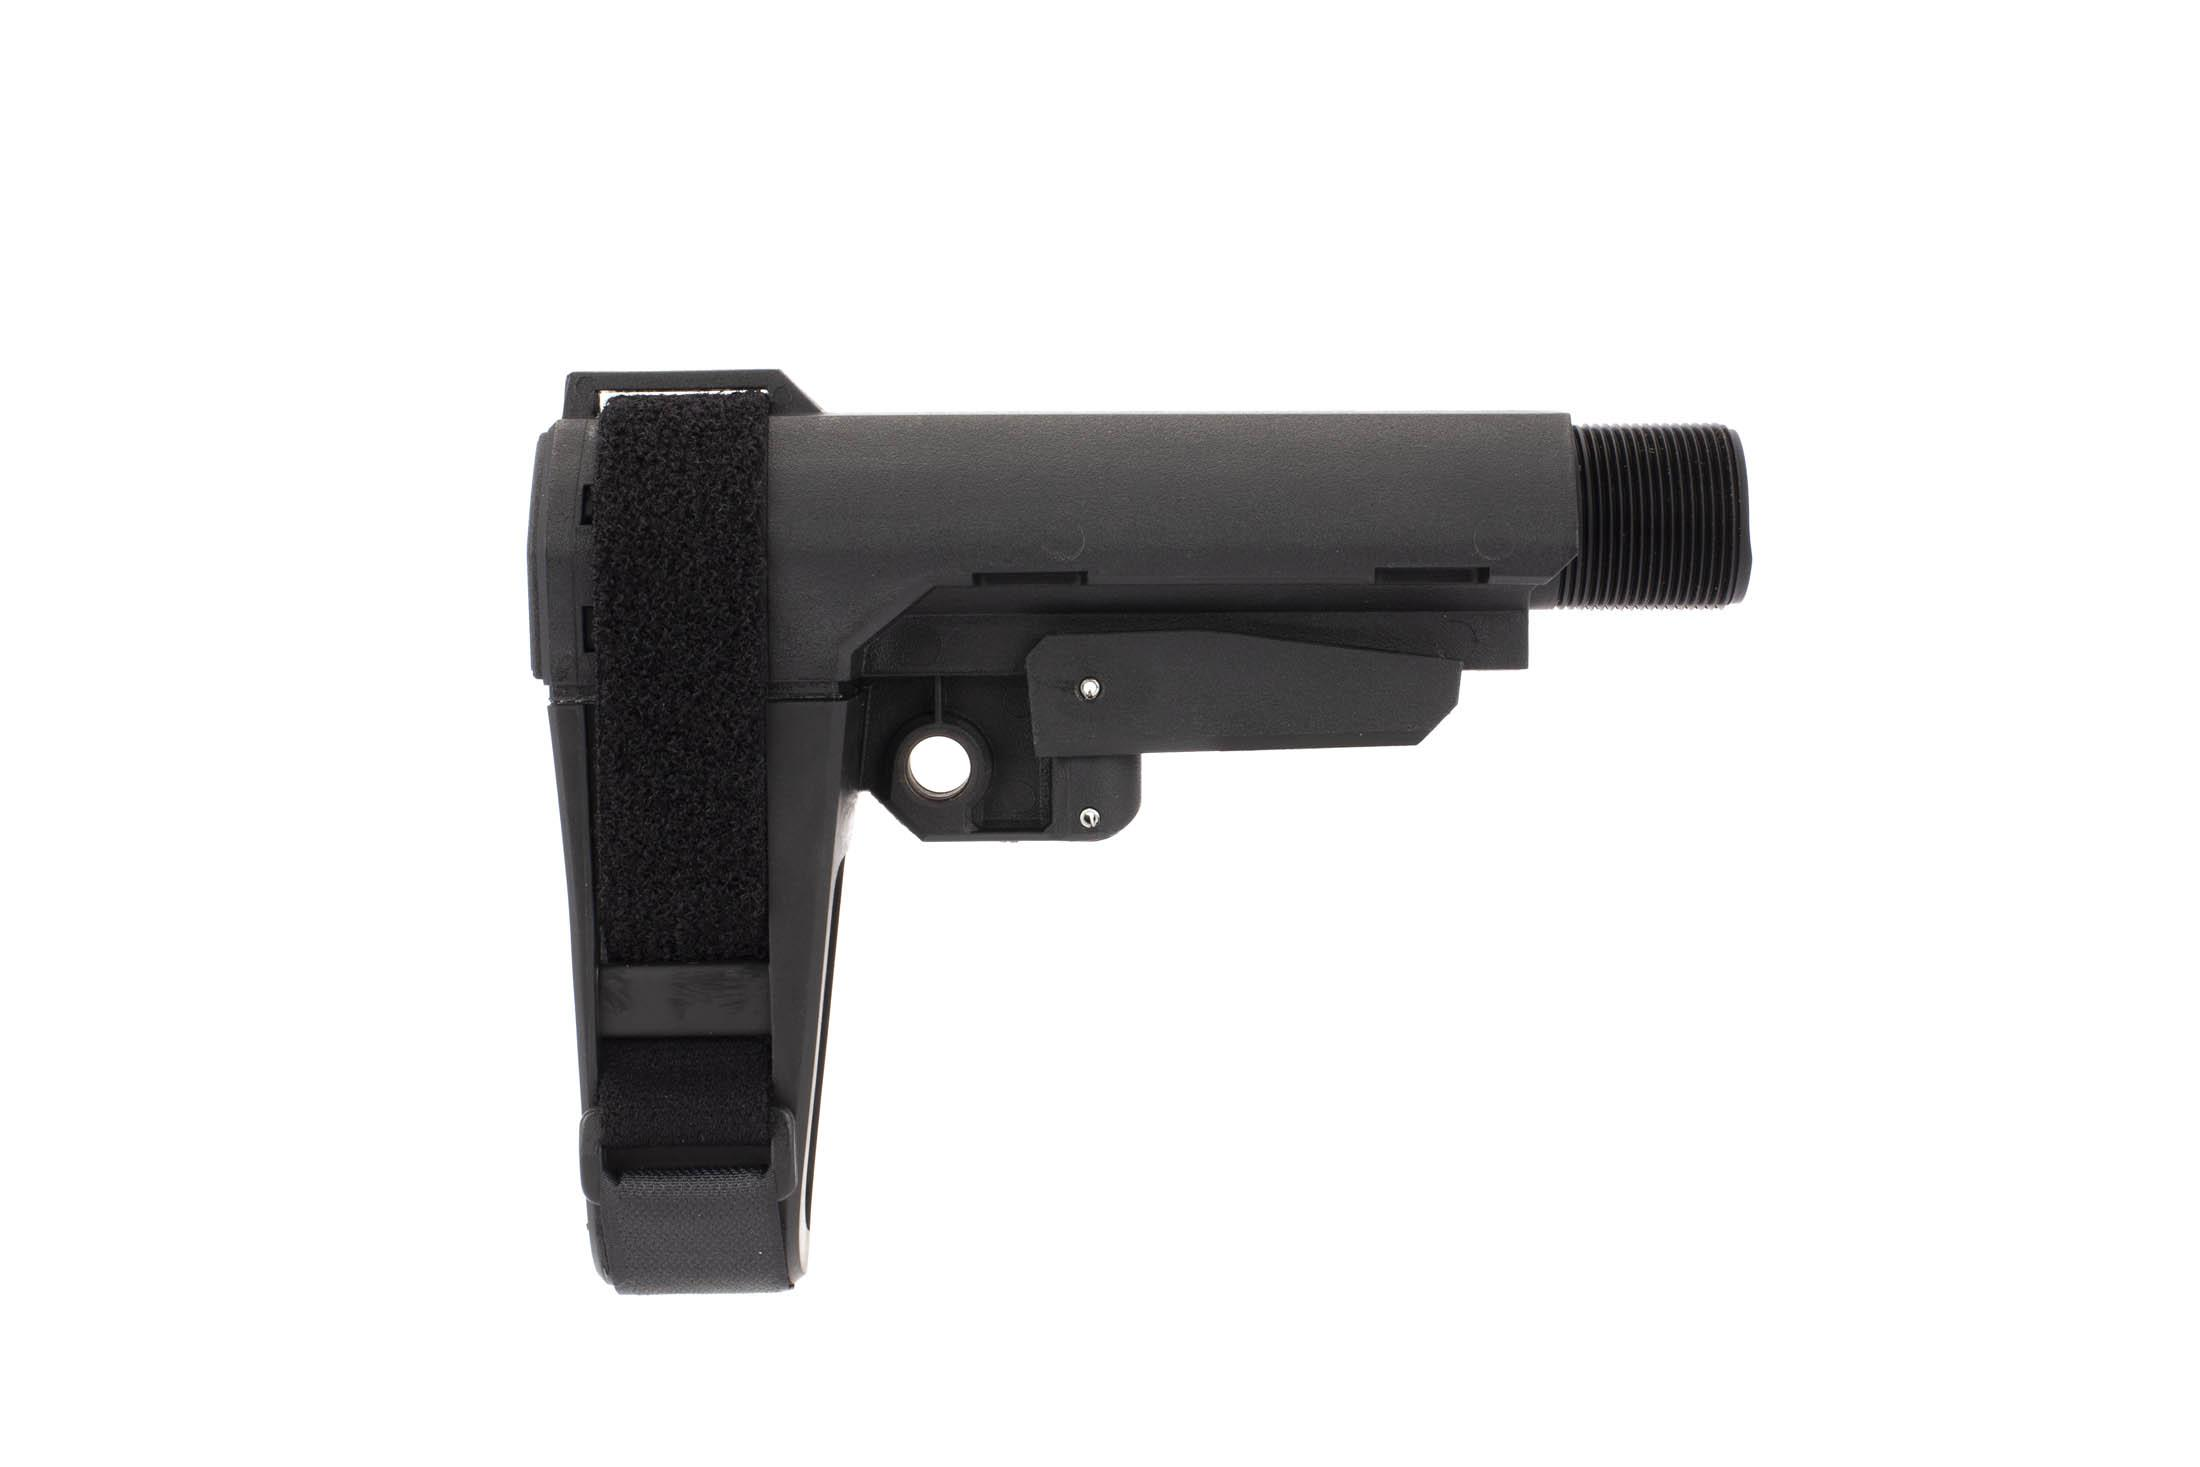 Image result for sba3 pistol brace